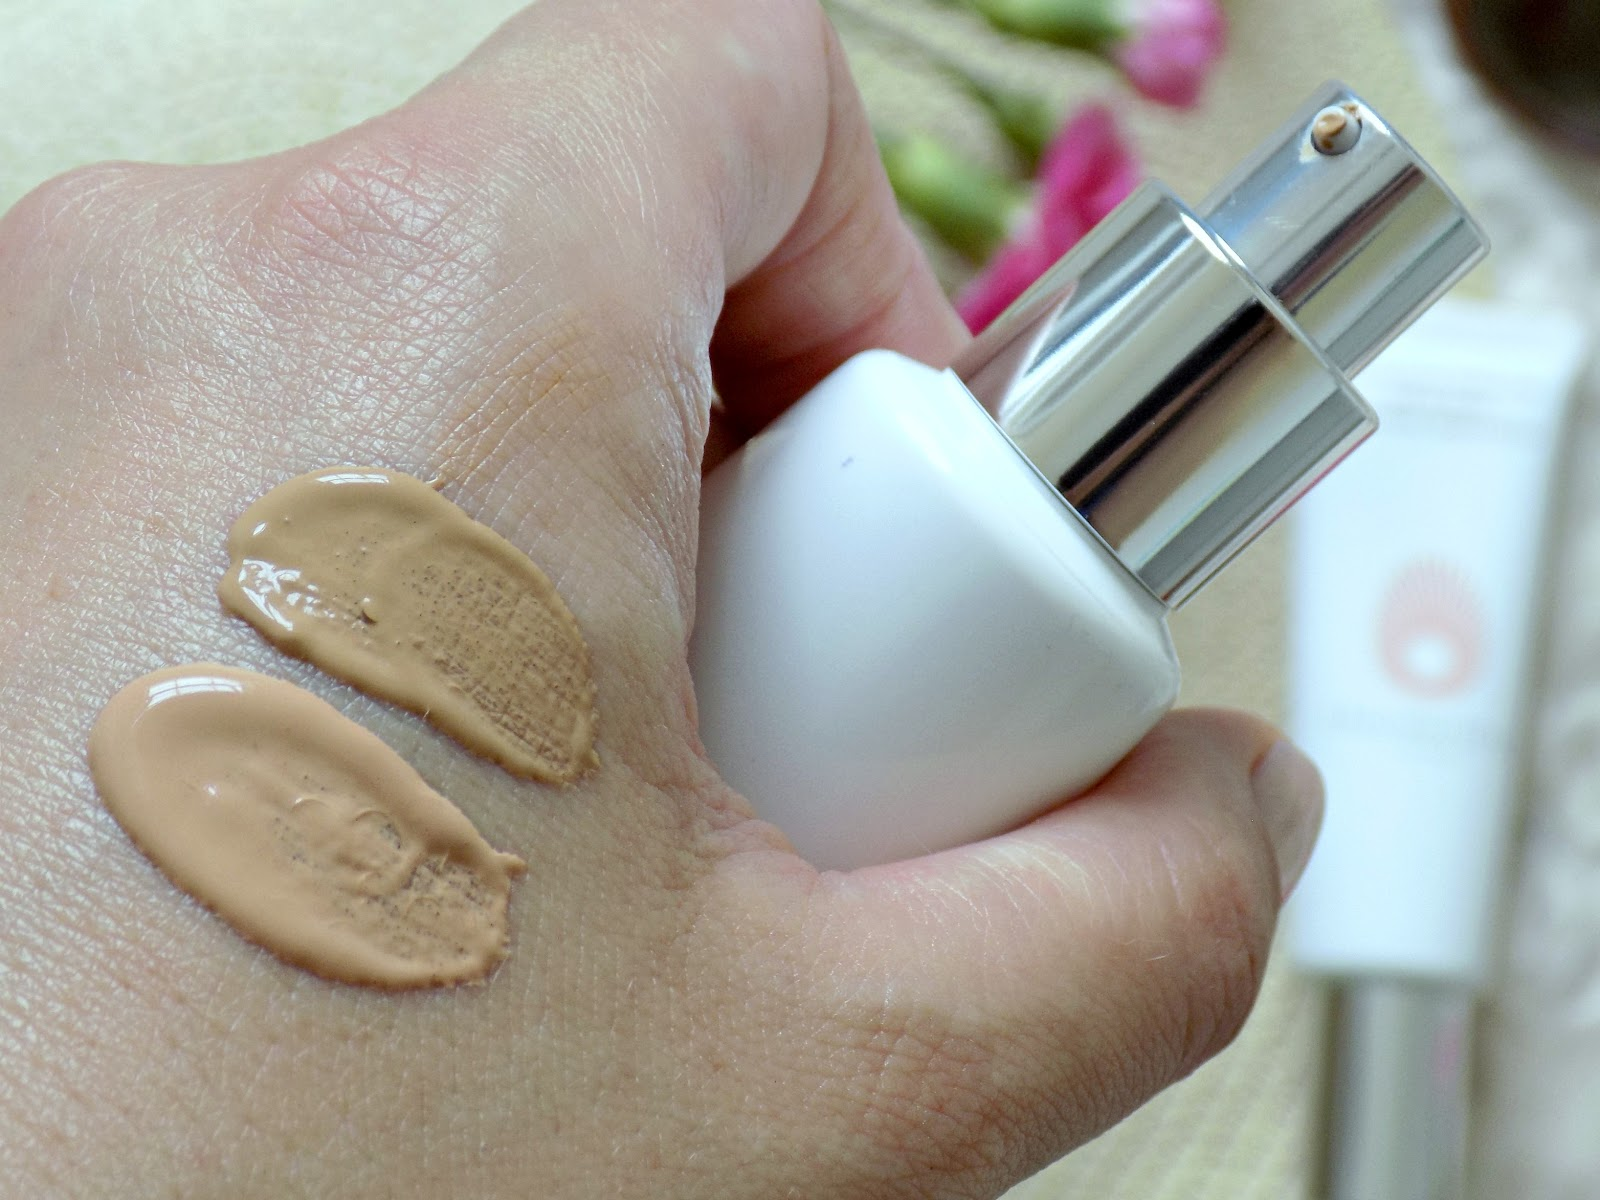 Omorovicza Complexion Perfector SPF20 Light and Medium